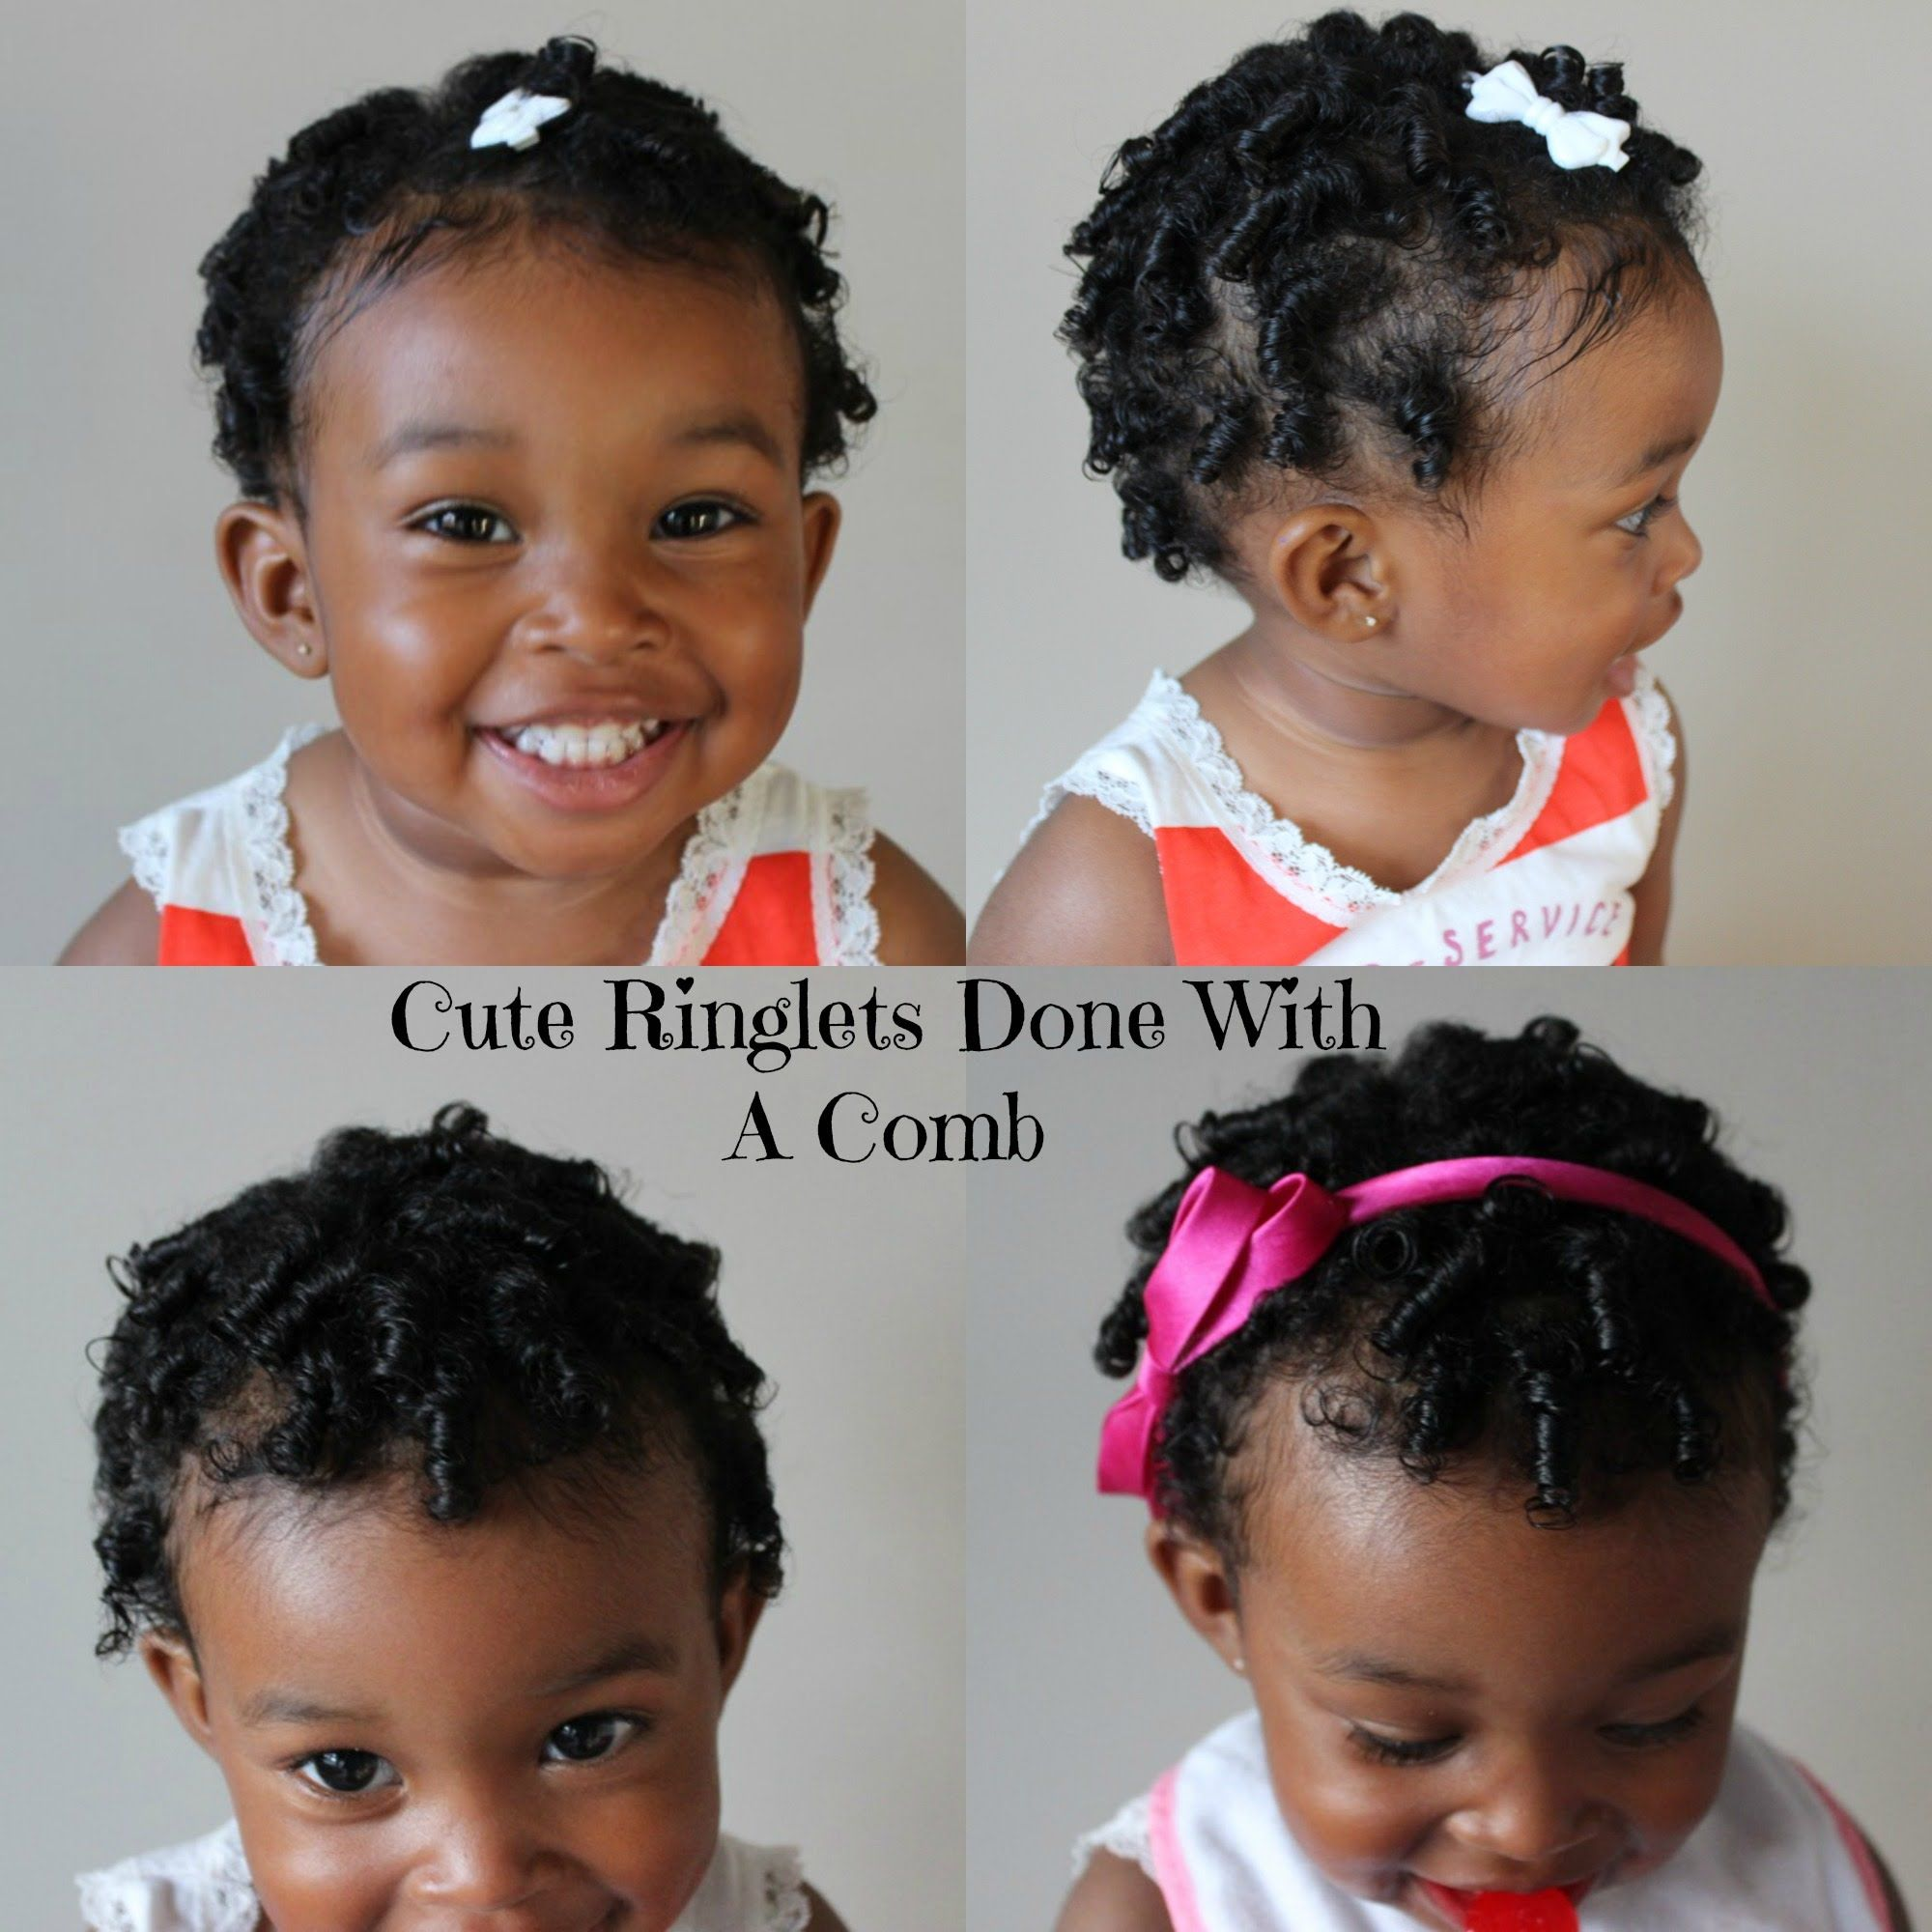 How To Do Ringlets In Curly Hair With Just A Comb Youtube Baby Hairstyles Kids Hairstyles Girls Mixed Girl Hairstyles